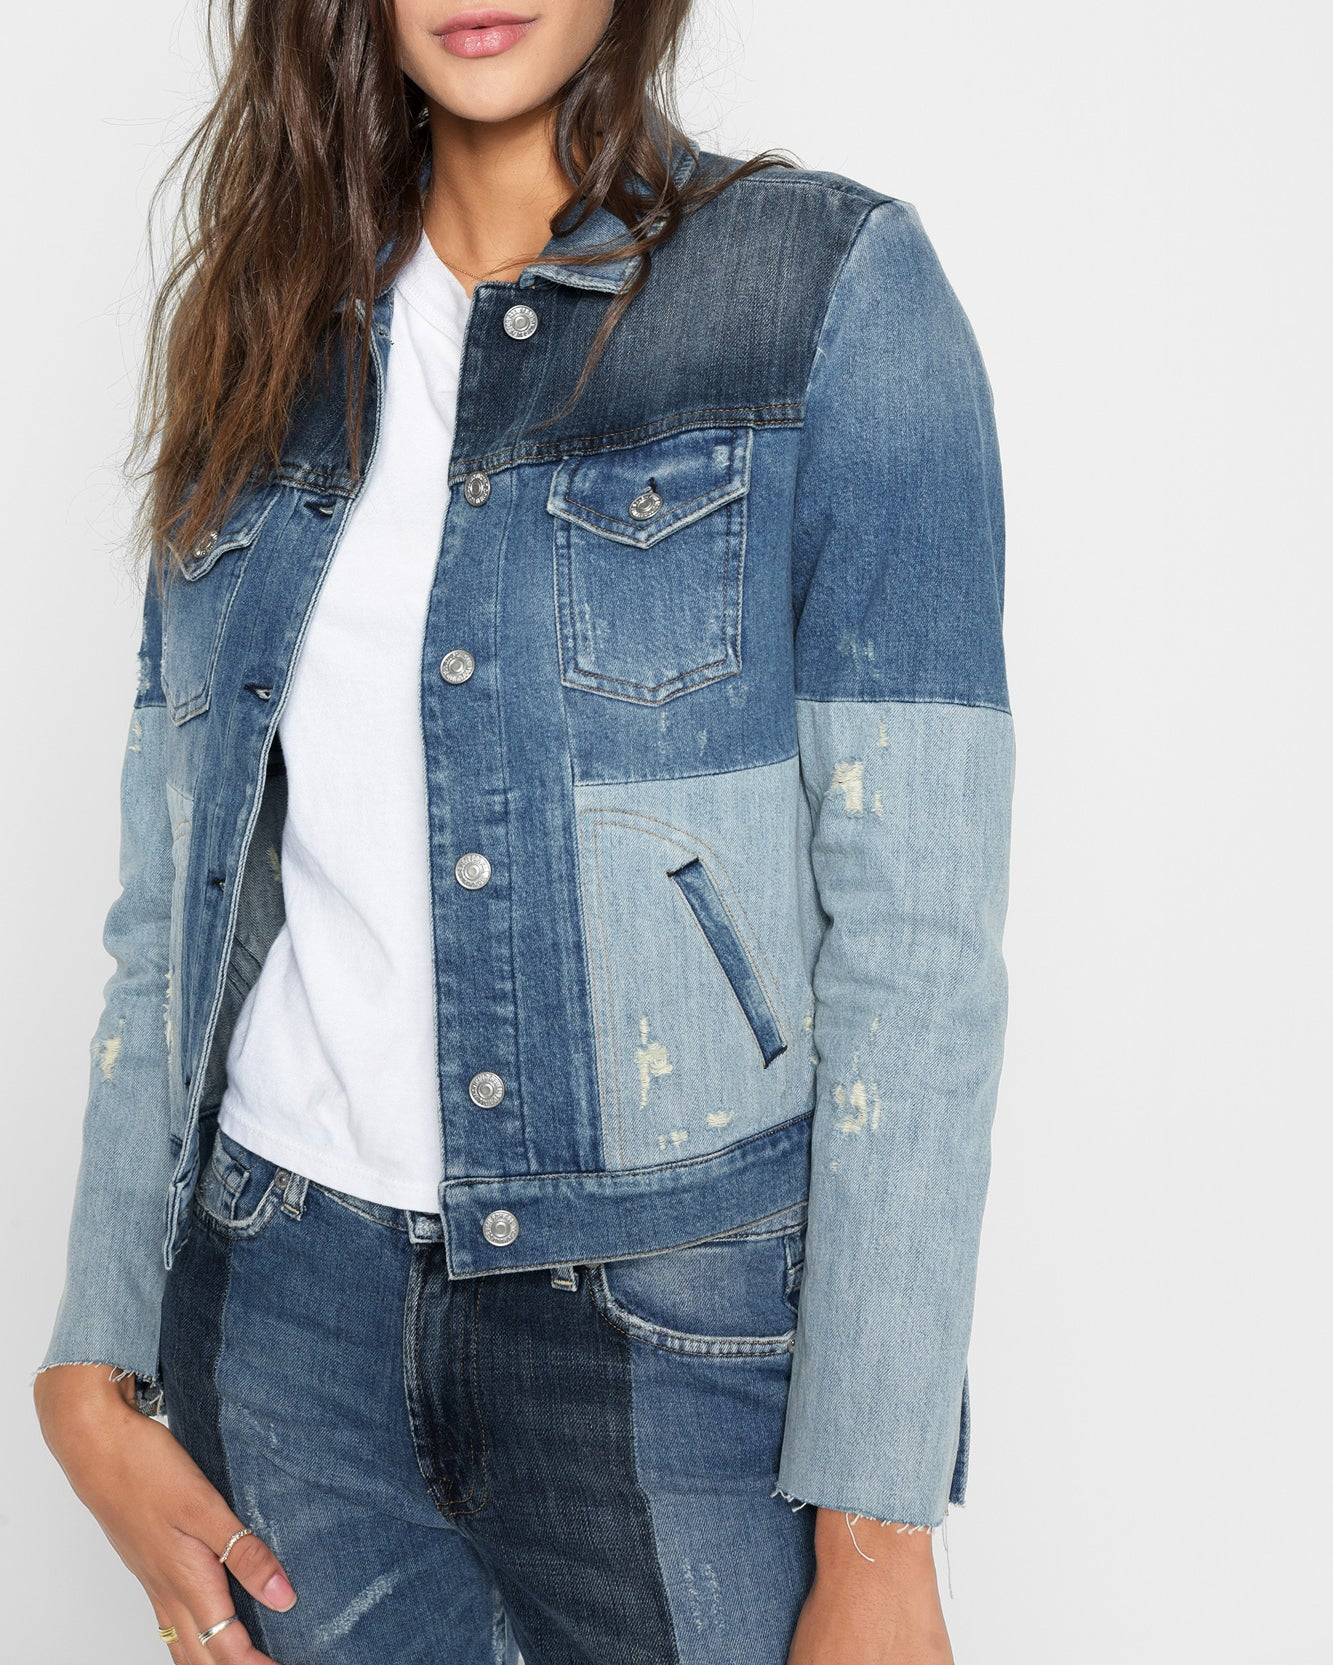 Image of Patchwork Jacket in Indigo Patches